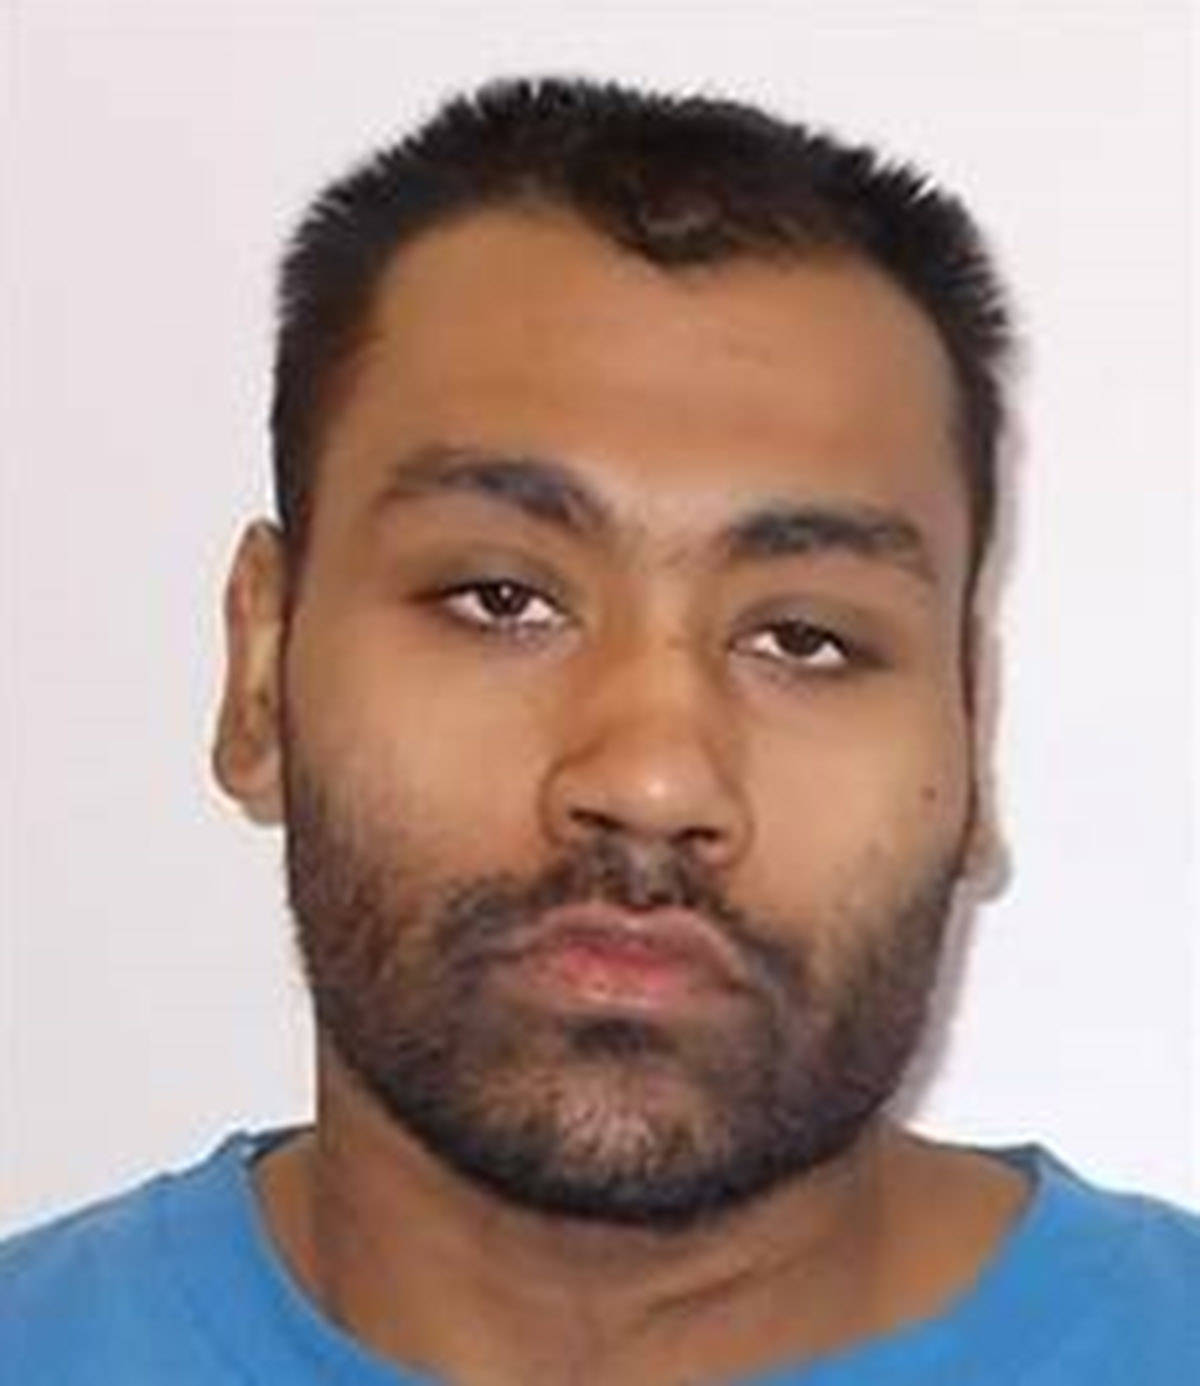 "Name: DAHAL, DILli Age: 26 Height: 5'11"" Weight: 199 lbs Hair: Black Eyes: Brown Wanted: Possession Schedule I/II Substance for trafficking Warrant in effect: January 27, 2021 Parole Jurisdiction: Surrey, BC"